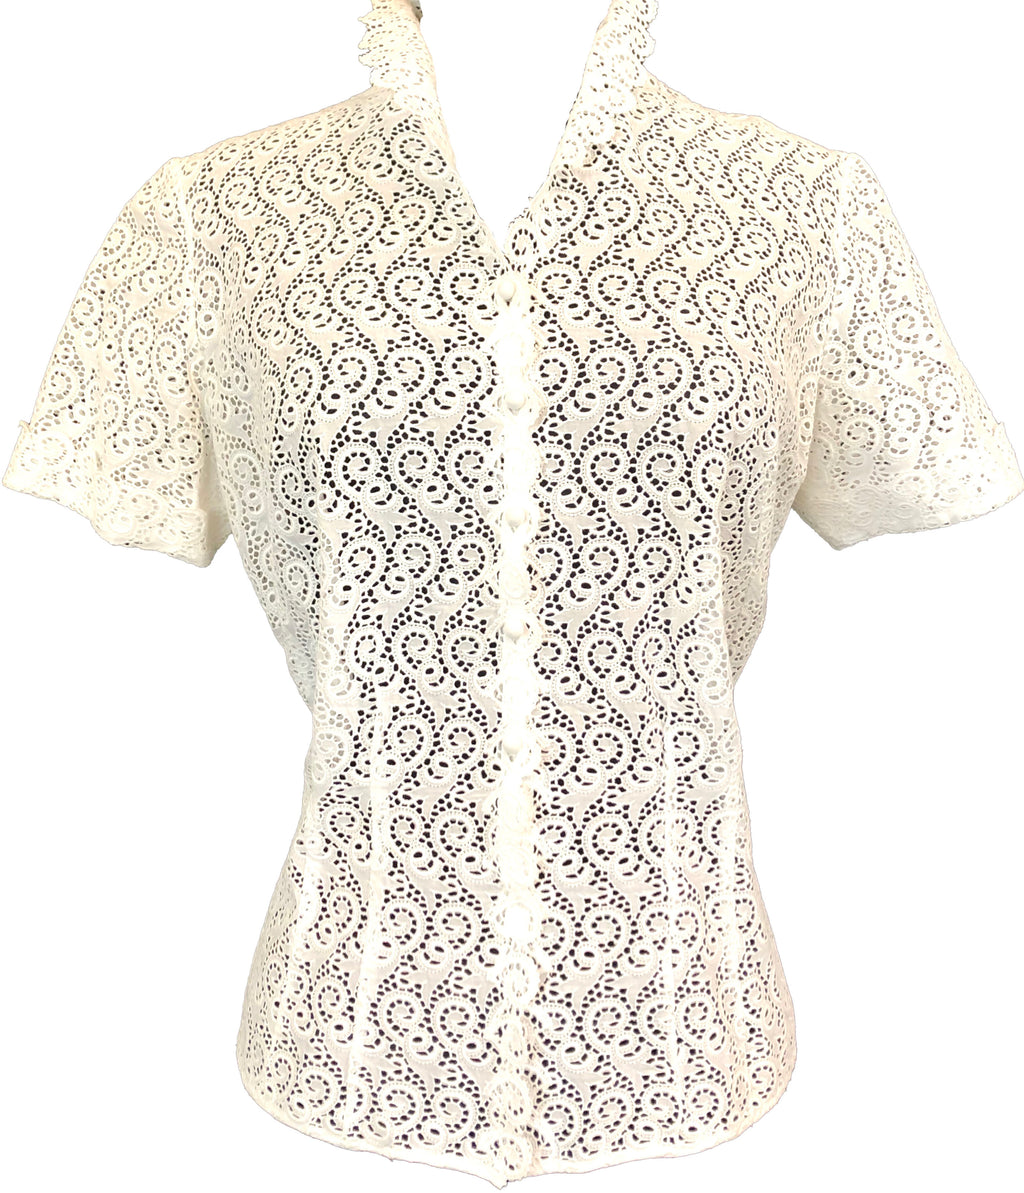 Sturzenegger 50s White Hand Embroidered Blouse FRONT 1 of 6